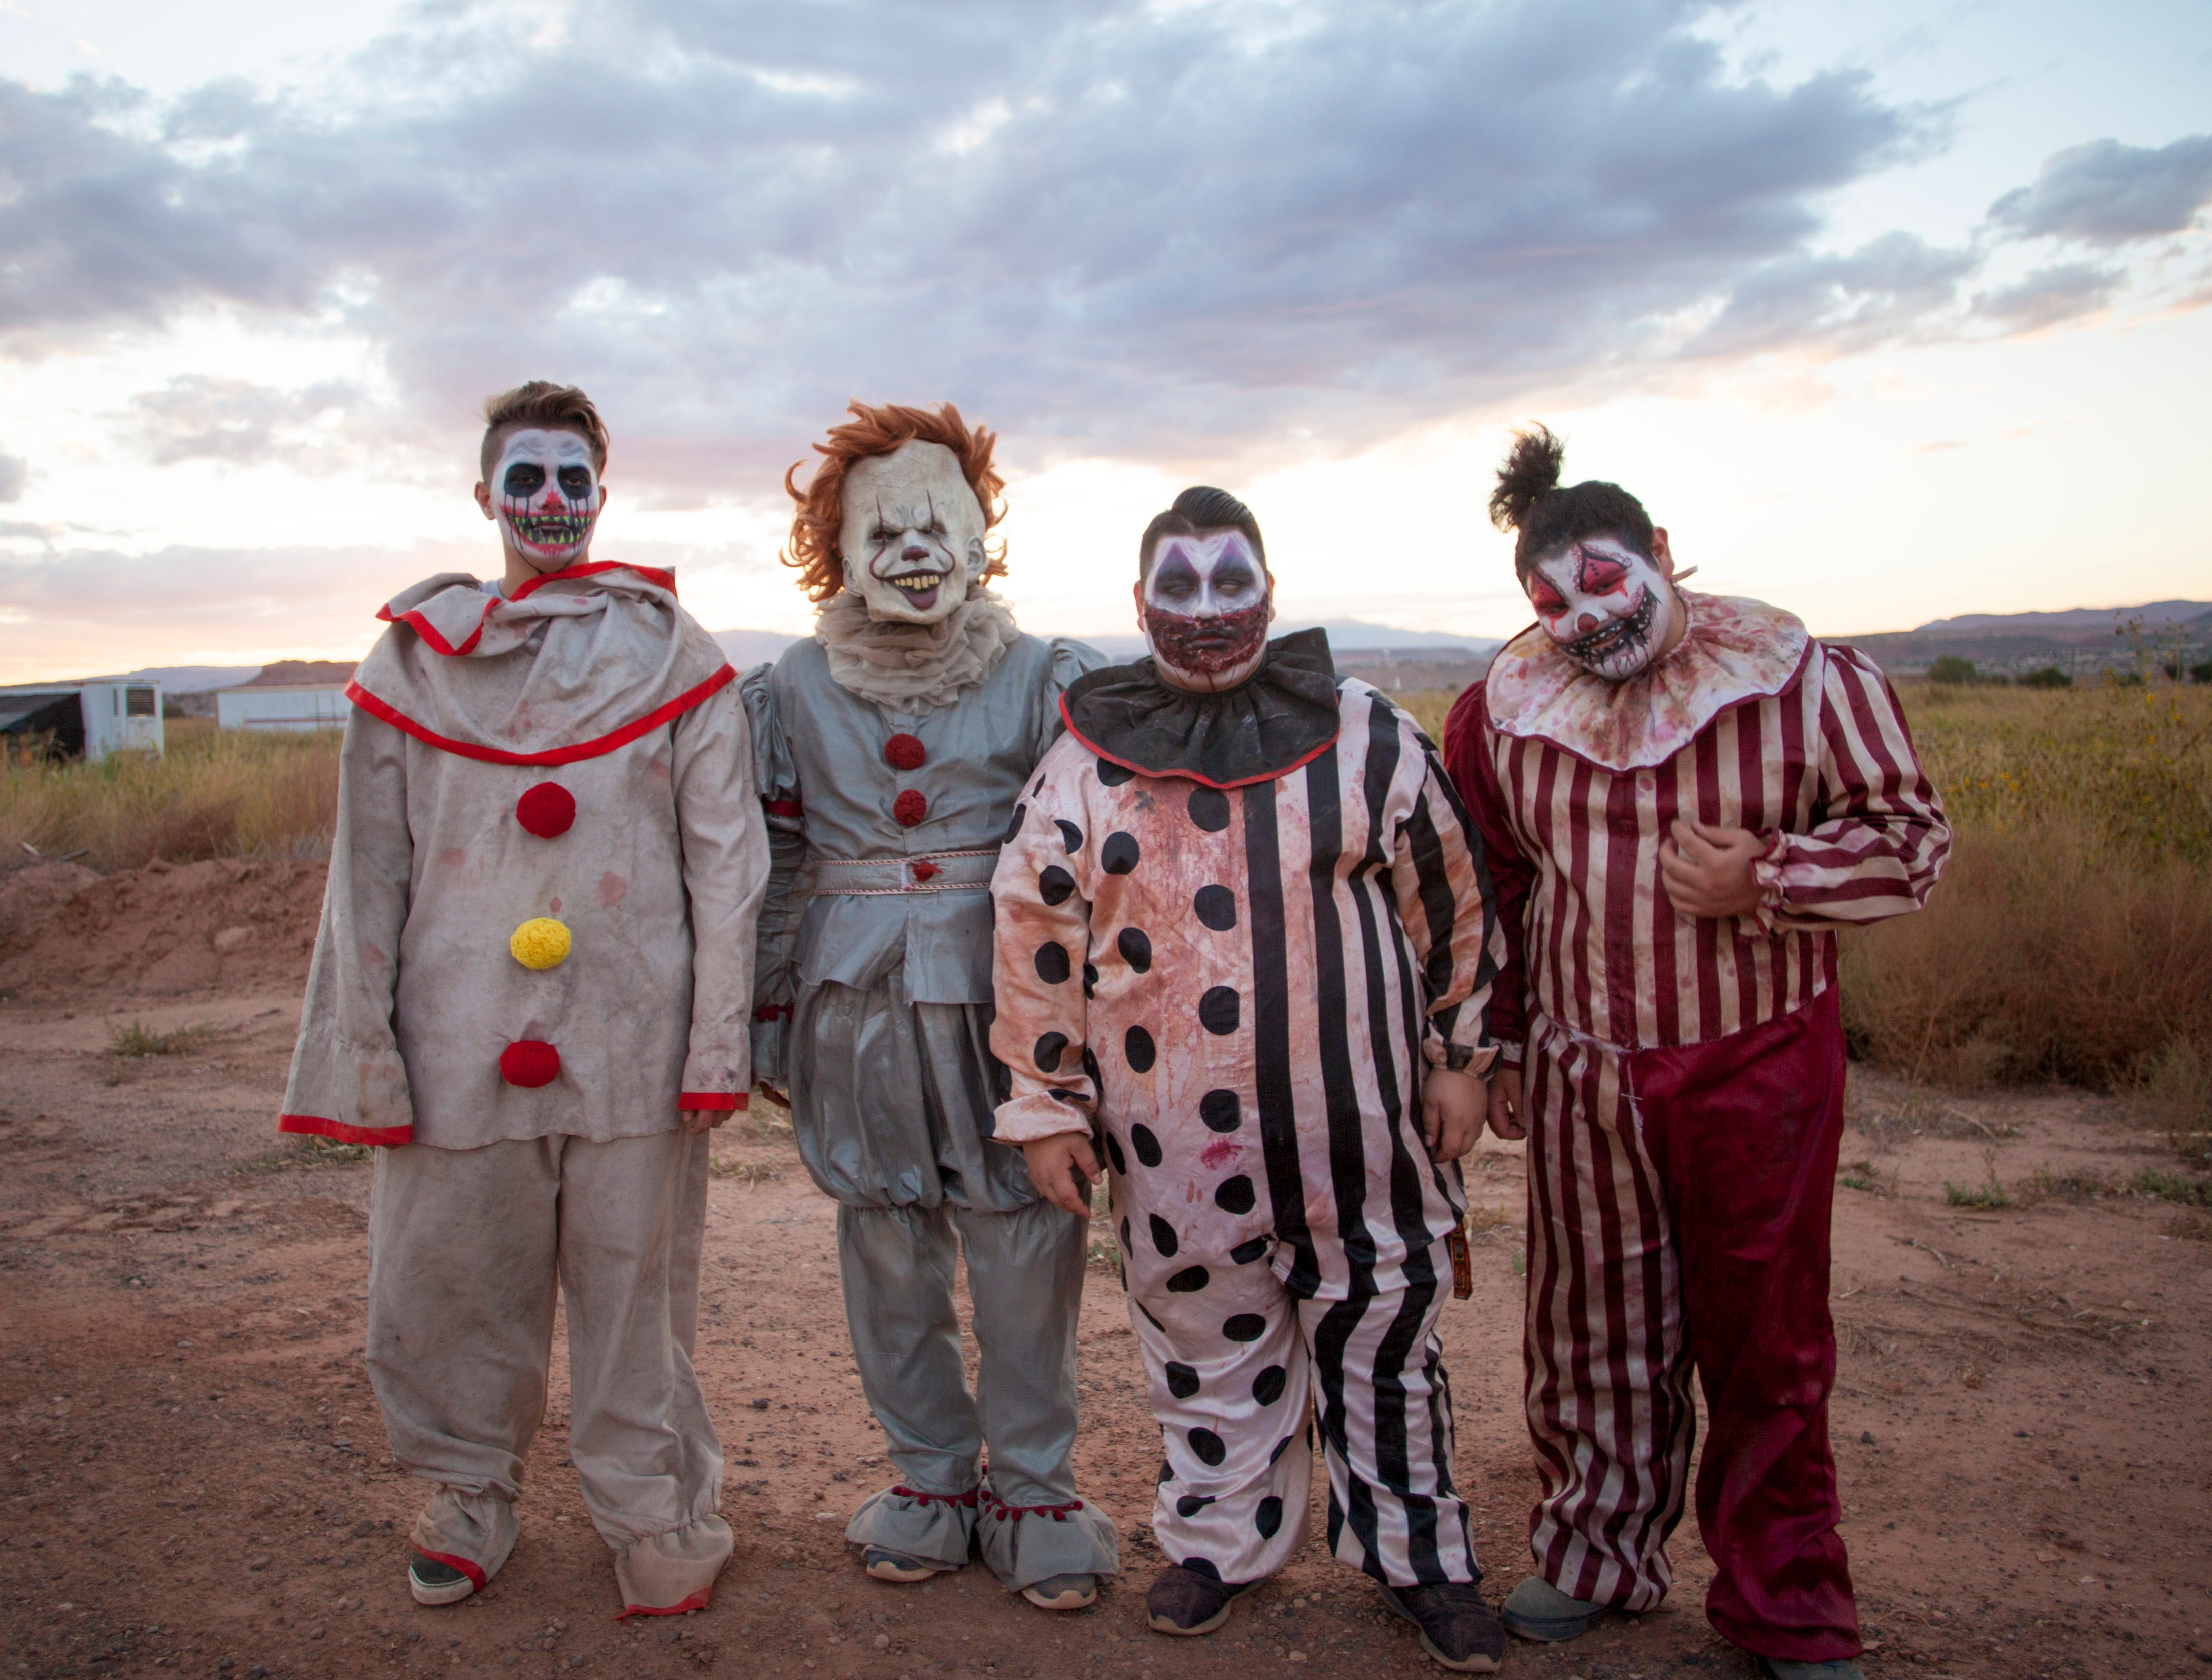 The Field of Screams cast prepares for another night of scaring thrill seekers at the Staheli Family Farm Saturday, Oct. 20, 2018.